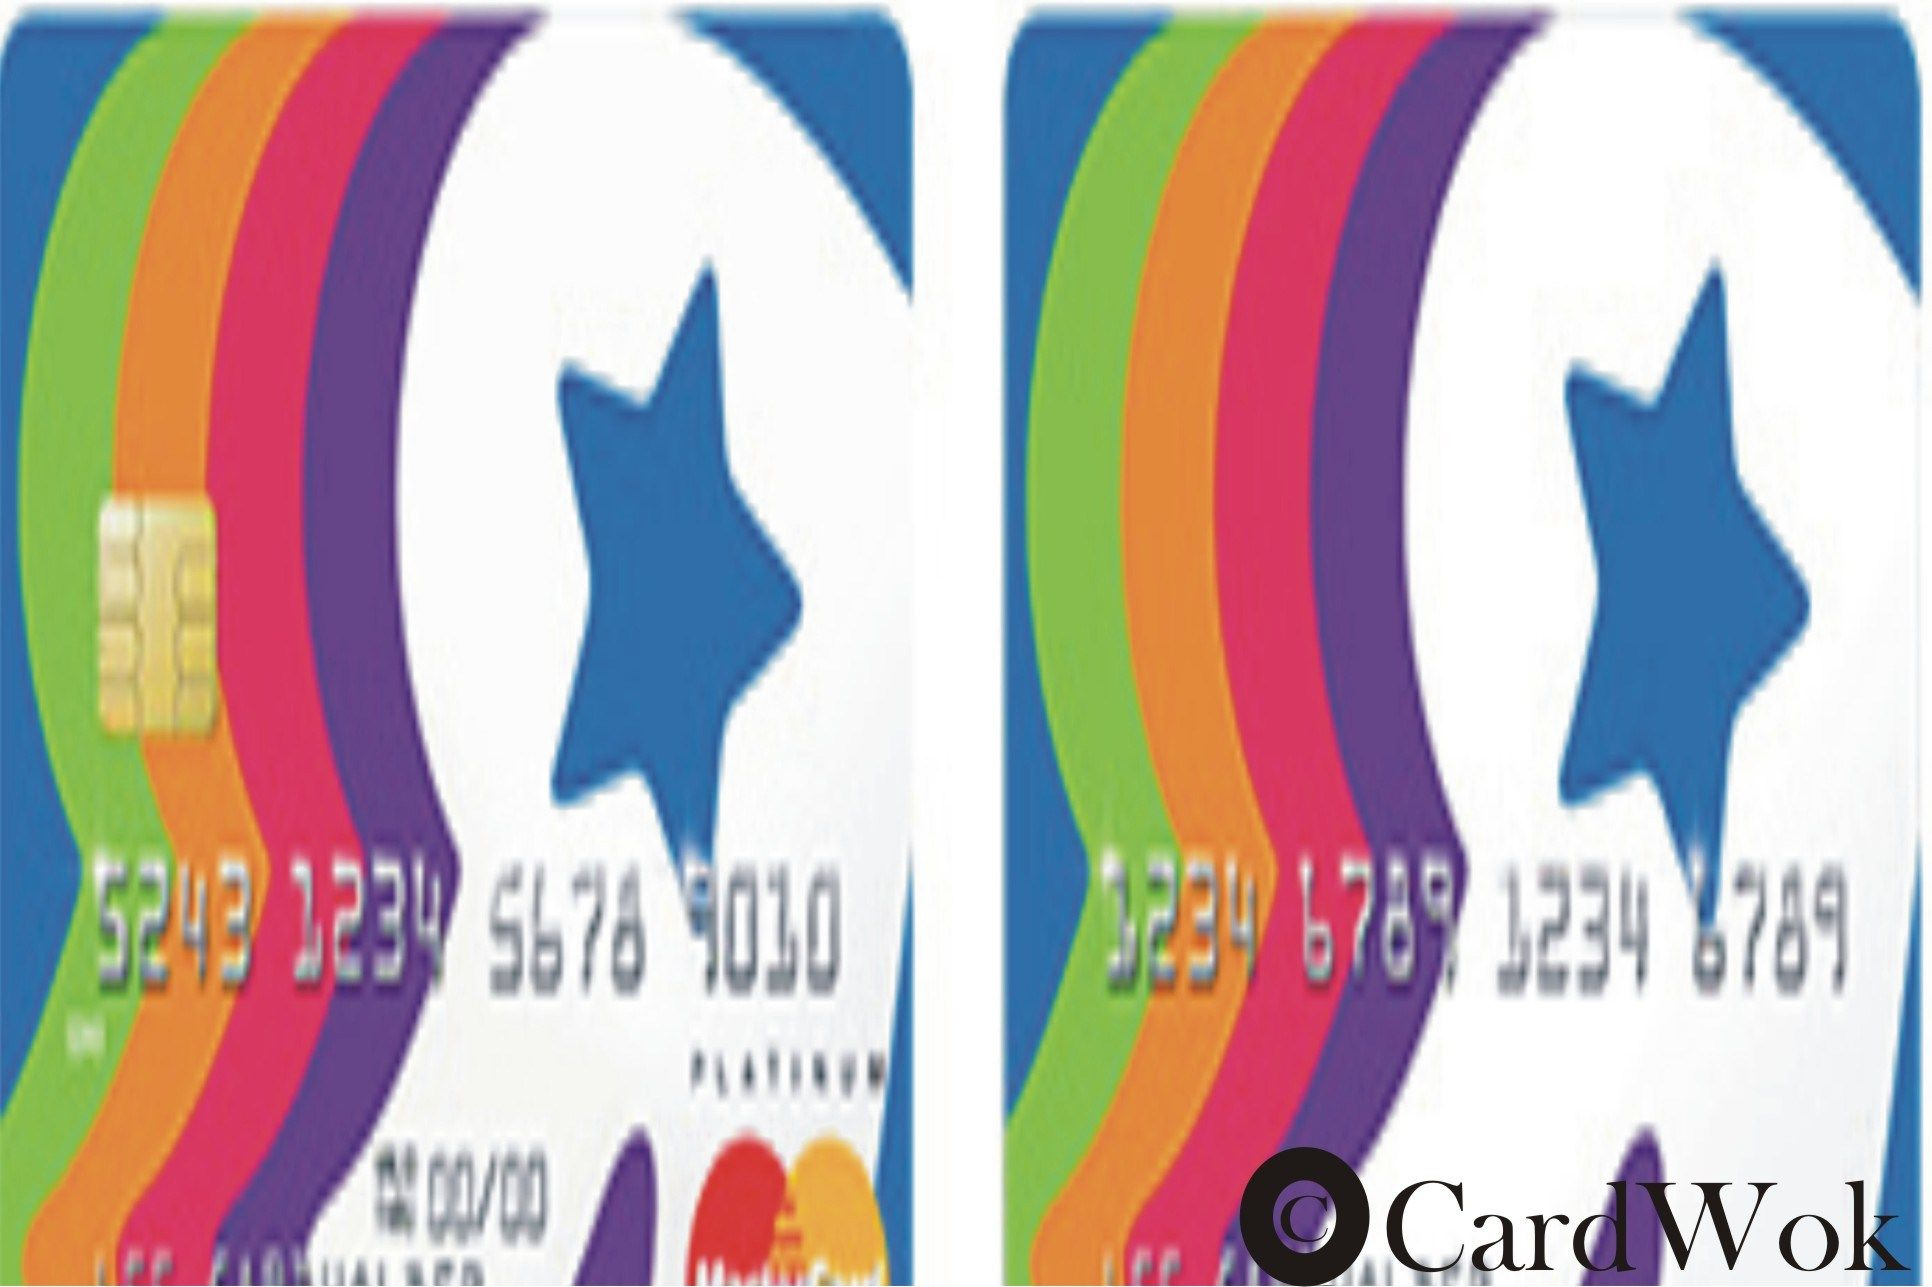 About Credit Facility Credit Card